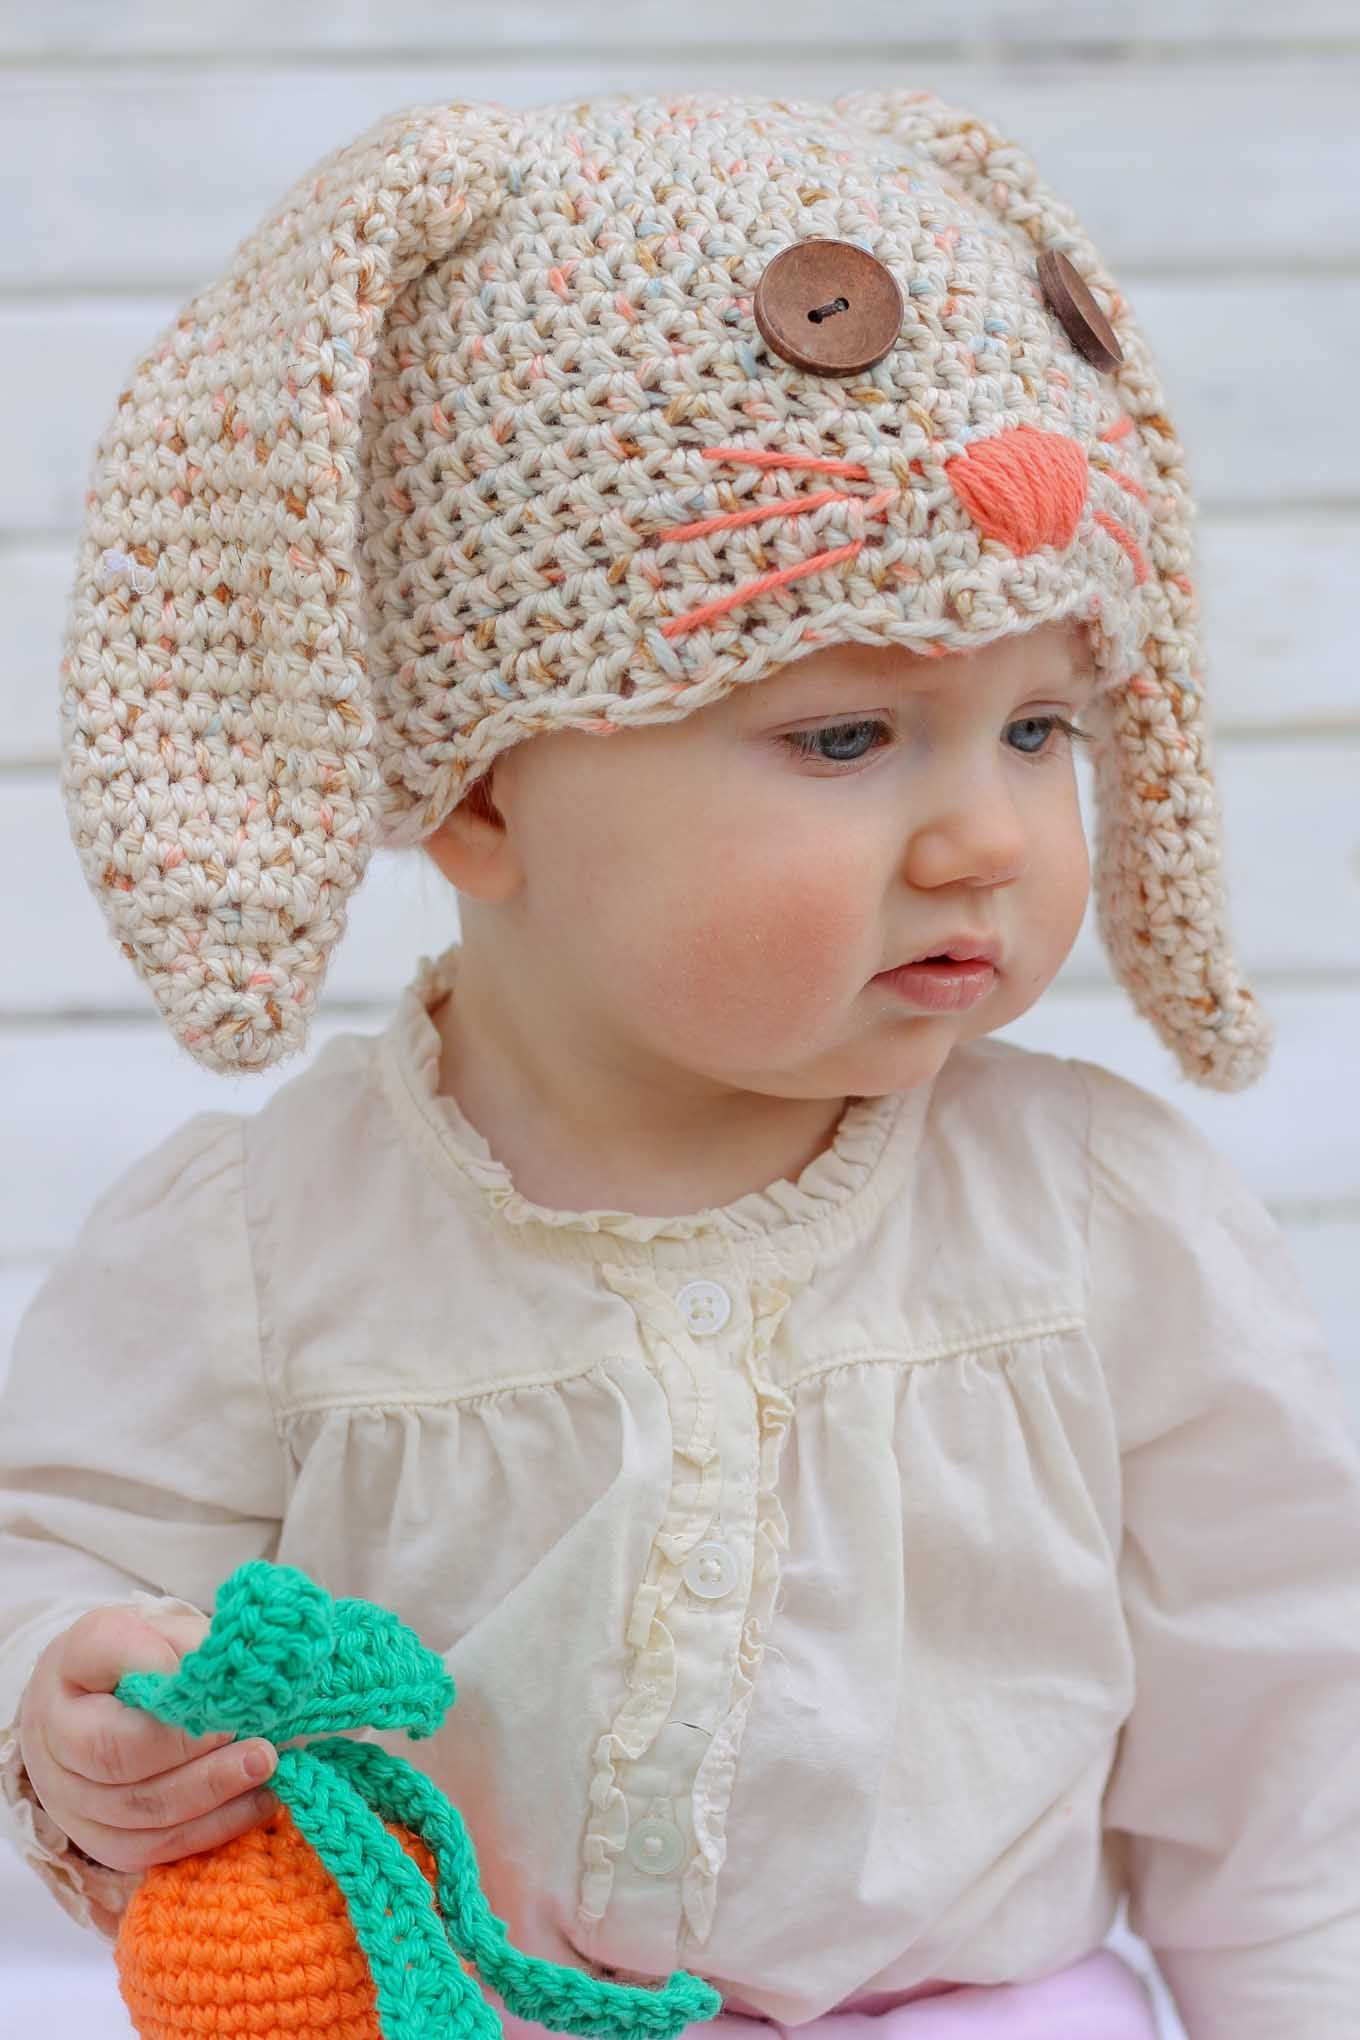 This free crochet bunny hat pattern makes a darling DIY Easter gift for your favorite baby or toddler. Pair with our free crochet carrot baby toy pattern.